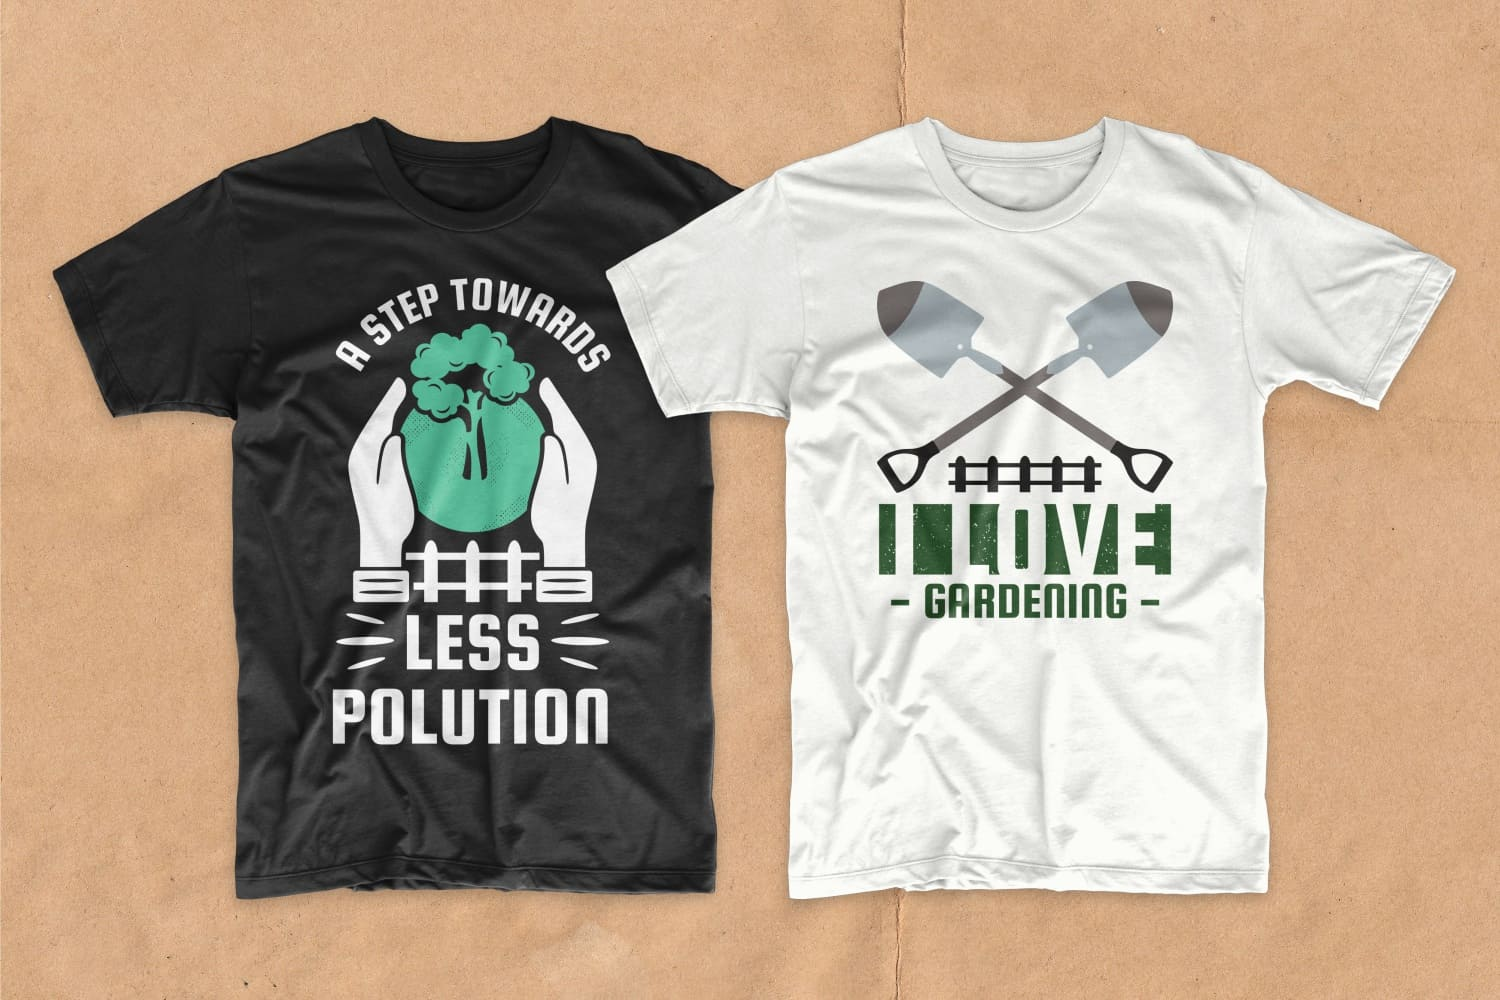 White and black T-shirts about the importance of saving the planet and greening it.